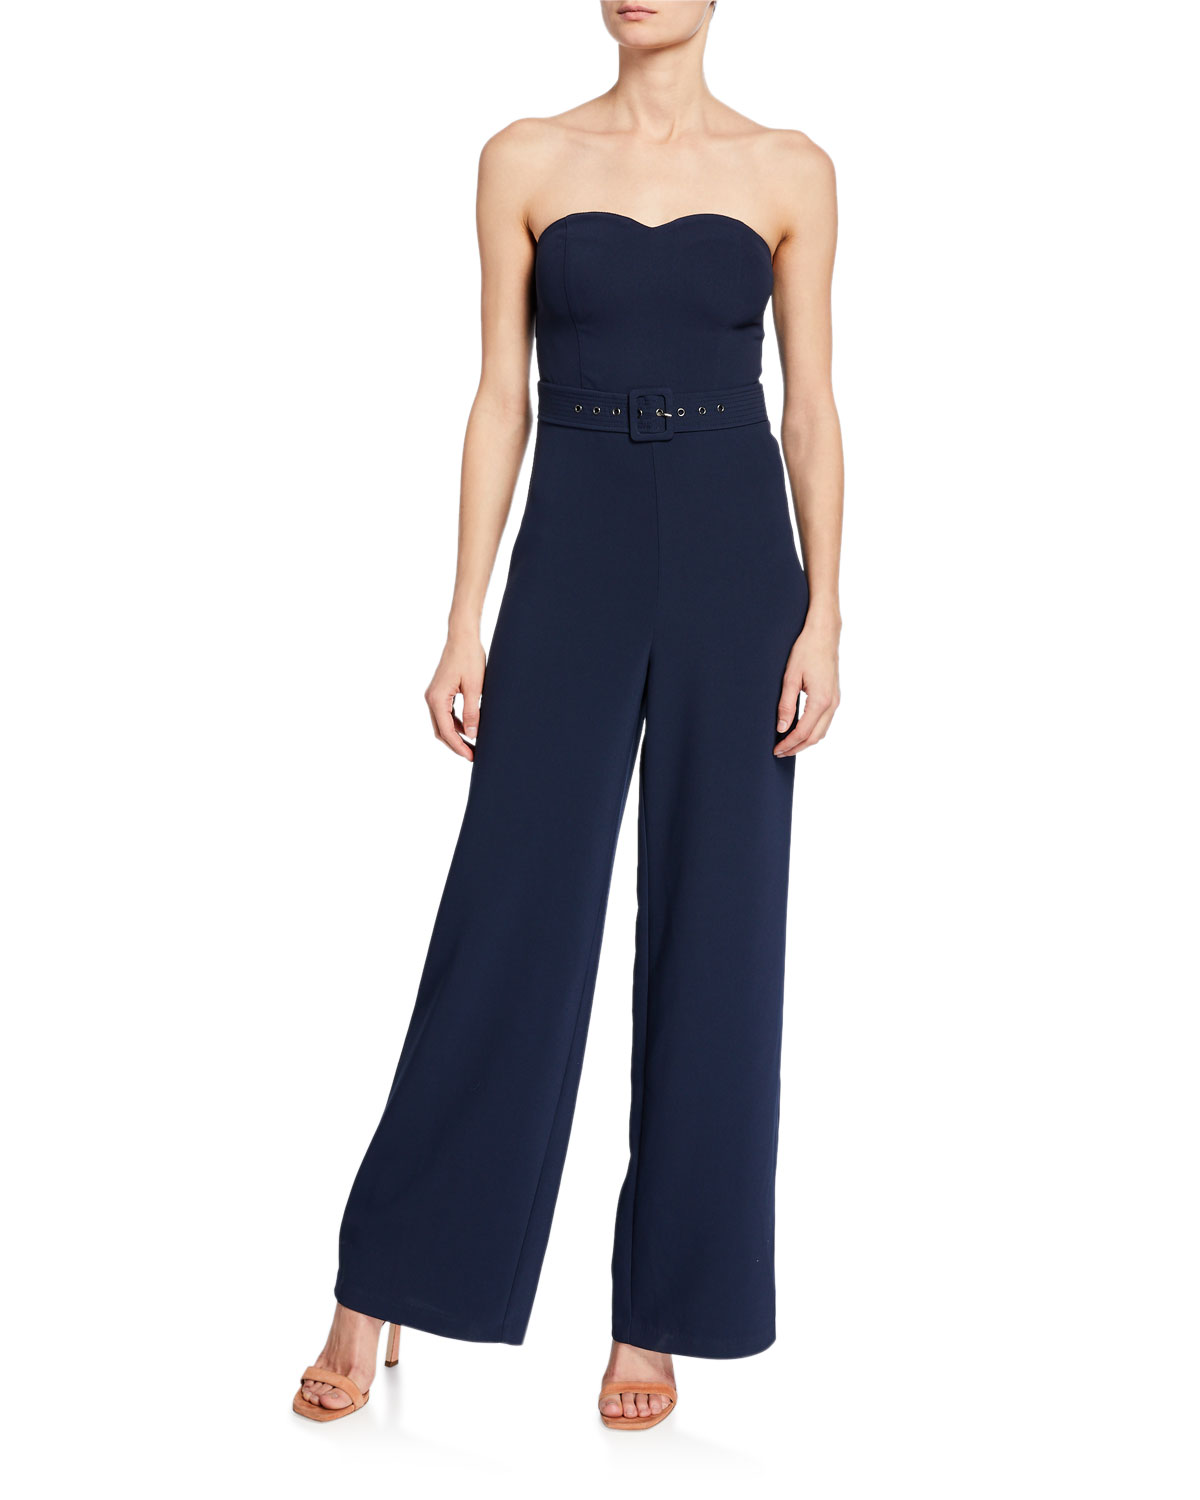 Devi Strapless Sweetheart Belted Jumpsuit by Likely